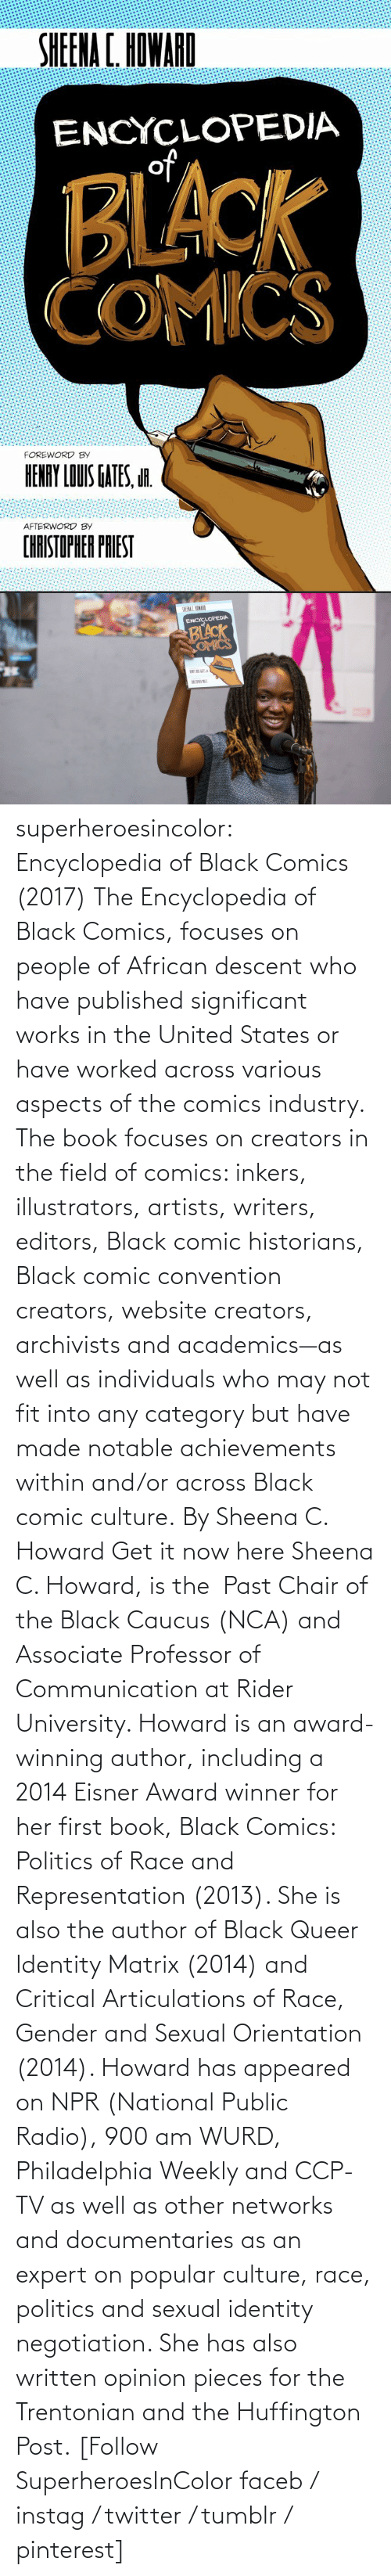 people: superheroesincolor: Encyclopedia of Black Comics (2017) The Encyclopedia of Black Comics, focuses on people of African descent who have published significant works in the United States or have worked across various aspects of the comics industry.  The book focuses on creators in the field of comics: inkers, illustrators, artists, writers, editors, Black comic historians, Black comic convention creators, website creators, archivists and academics—as well as individuals who may not fit into any category but have made notable achievements within and/or across Black comic culture. By Sheena C. Howard Get it now here  Sheena C. Howard, is the  Past Chair of the Black Caucus (NCA) and Associate Professor of Communication at Rider University. Howard is an award-winning author, including a 2014 Eisner Award winner for her first book, Black Comics: Politics of Race and Representation (2013). She is also the author of Black Queer Identity Matrix (2014) and Critical Articulations of Race, Gender and Sexual Orientation (2014). Howard has appeared on NPR (National Public Radio), 900 am WURD, Philadelphia Weekly and CCP-TV as well as other networks and documentaries as an expert on popular culture, race, politics and sexual identity negotiation. She has also written opinion pieces for the Trentonian and the Huffington Post.   [Follow SuperheroesInColor faceb / instag / twitter / tumblr / pinterest]